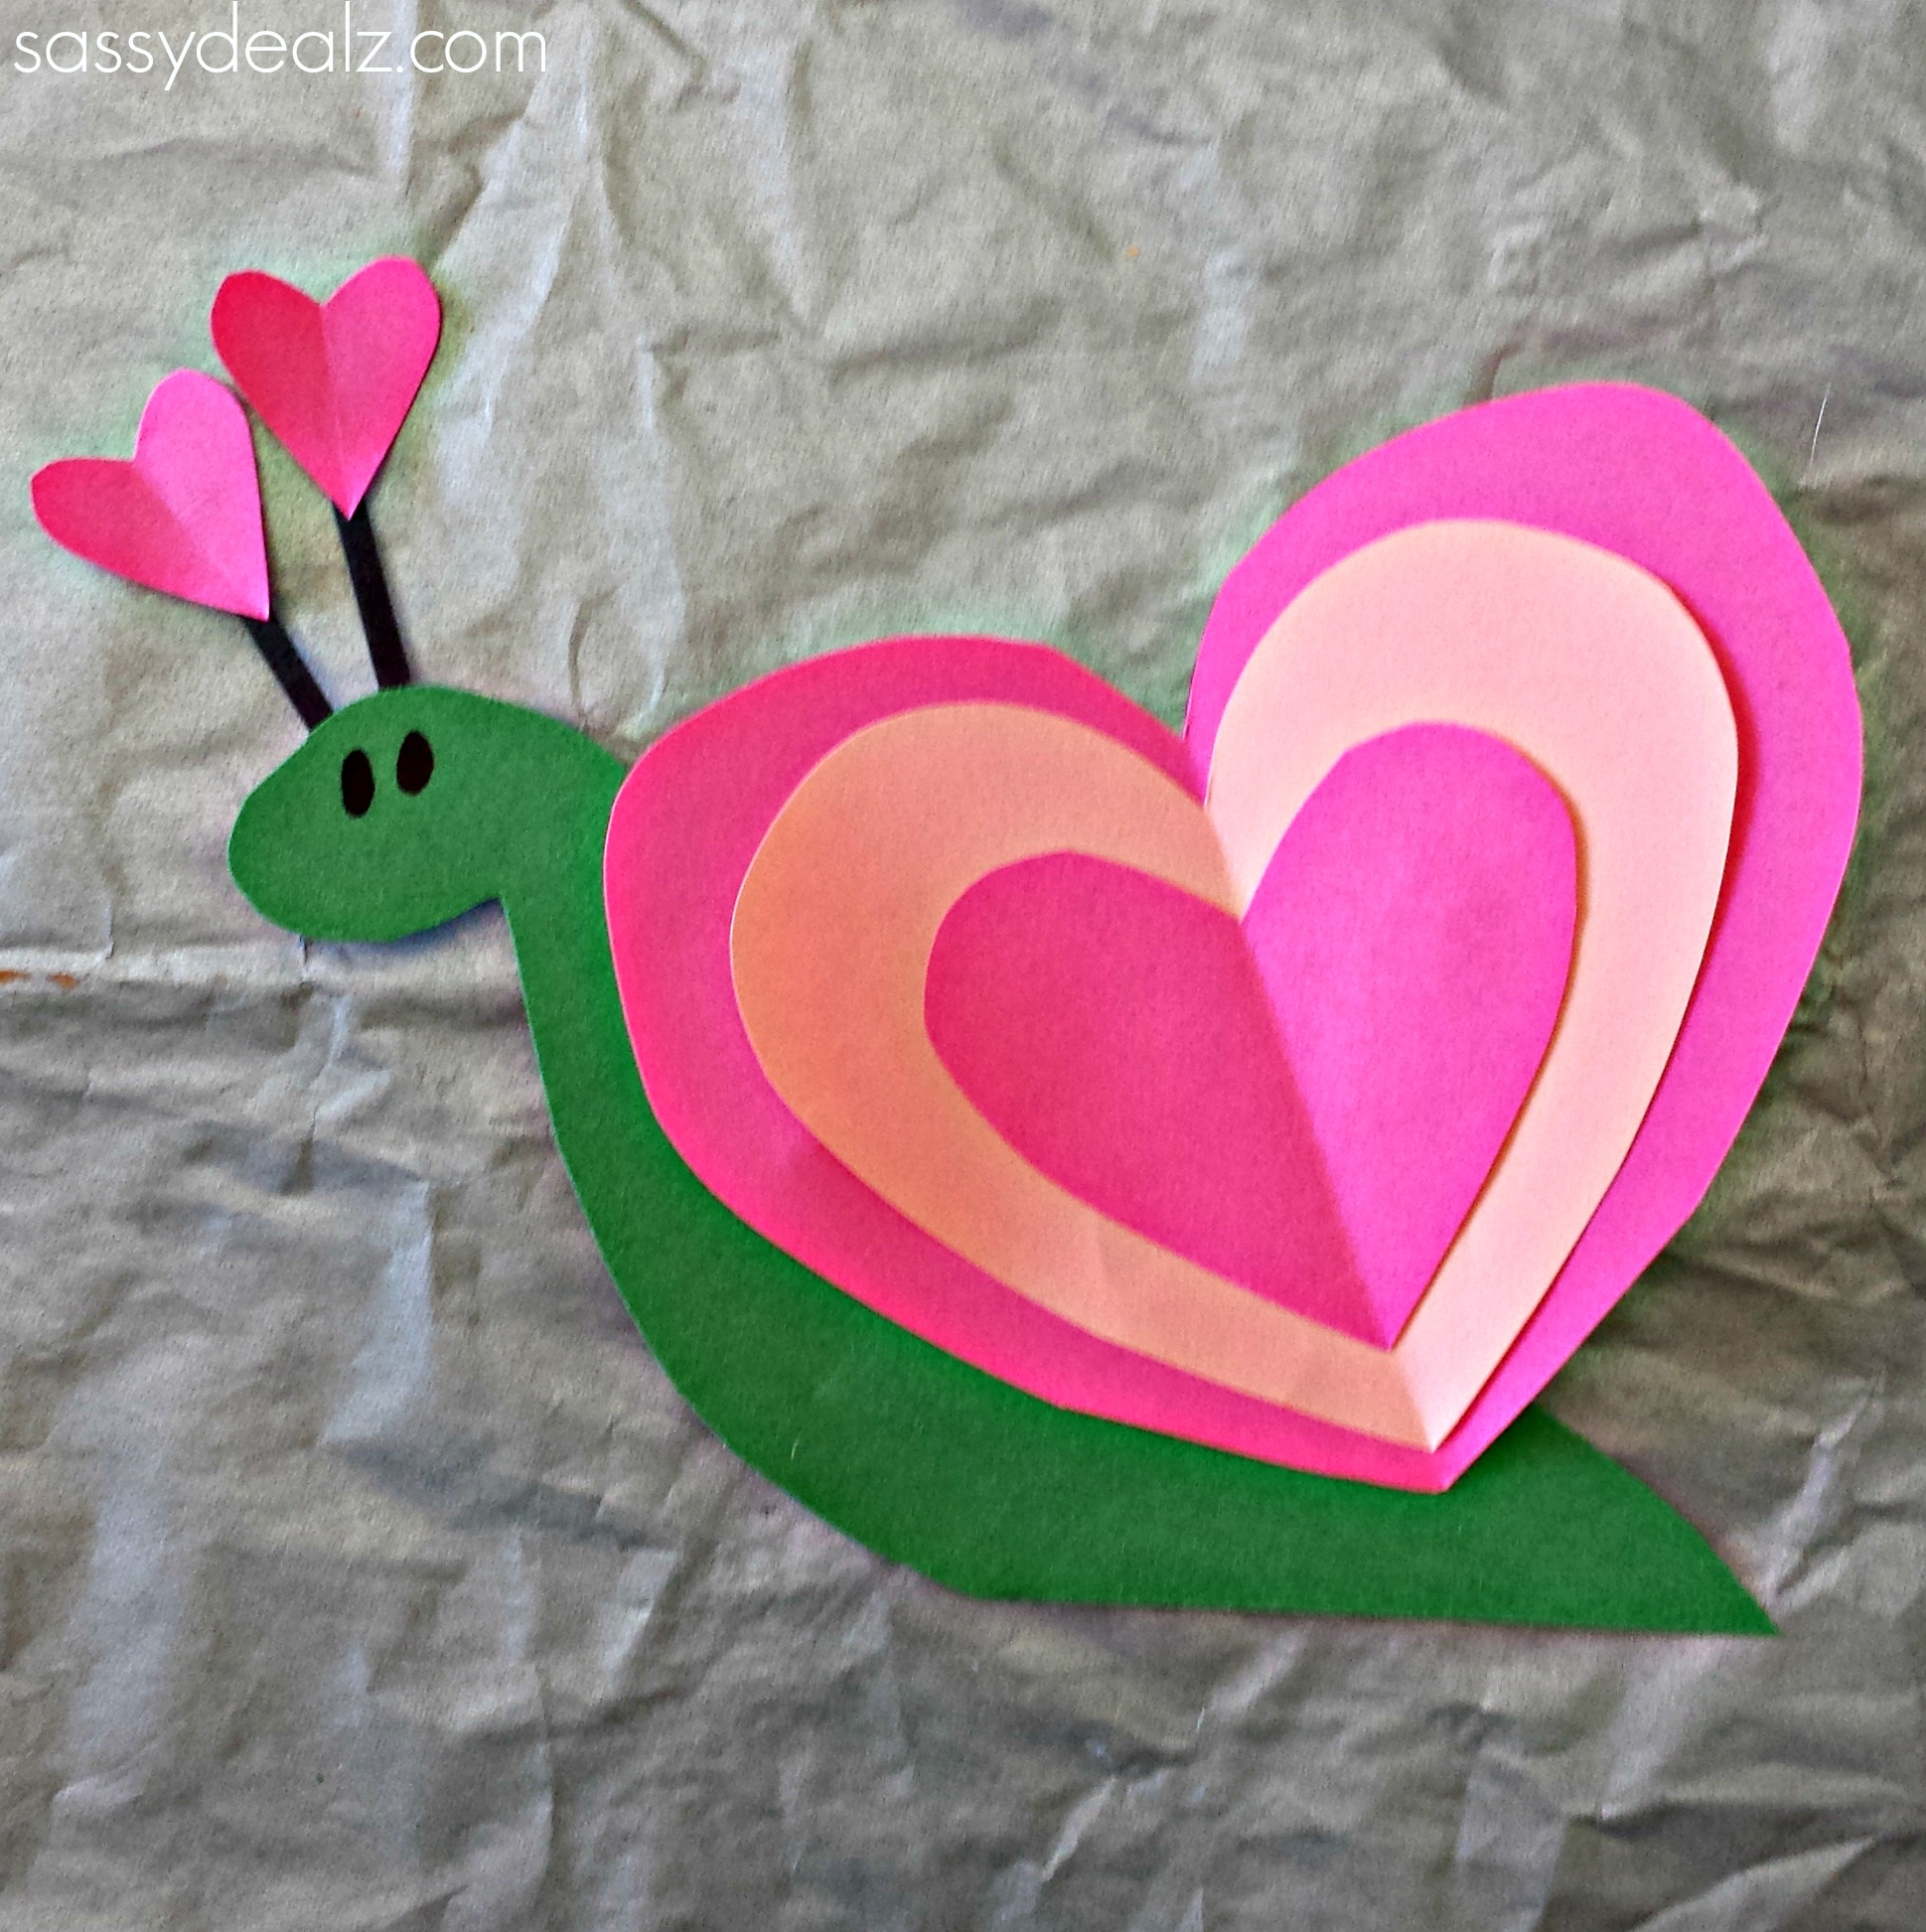 Snail Heart Craft For Kids